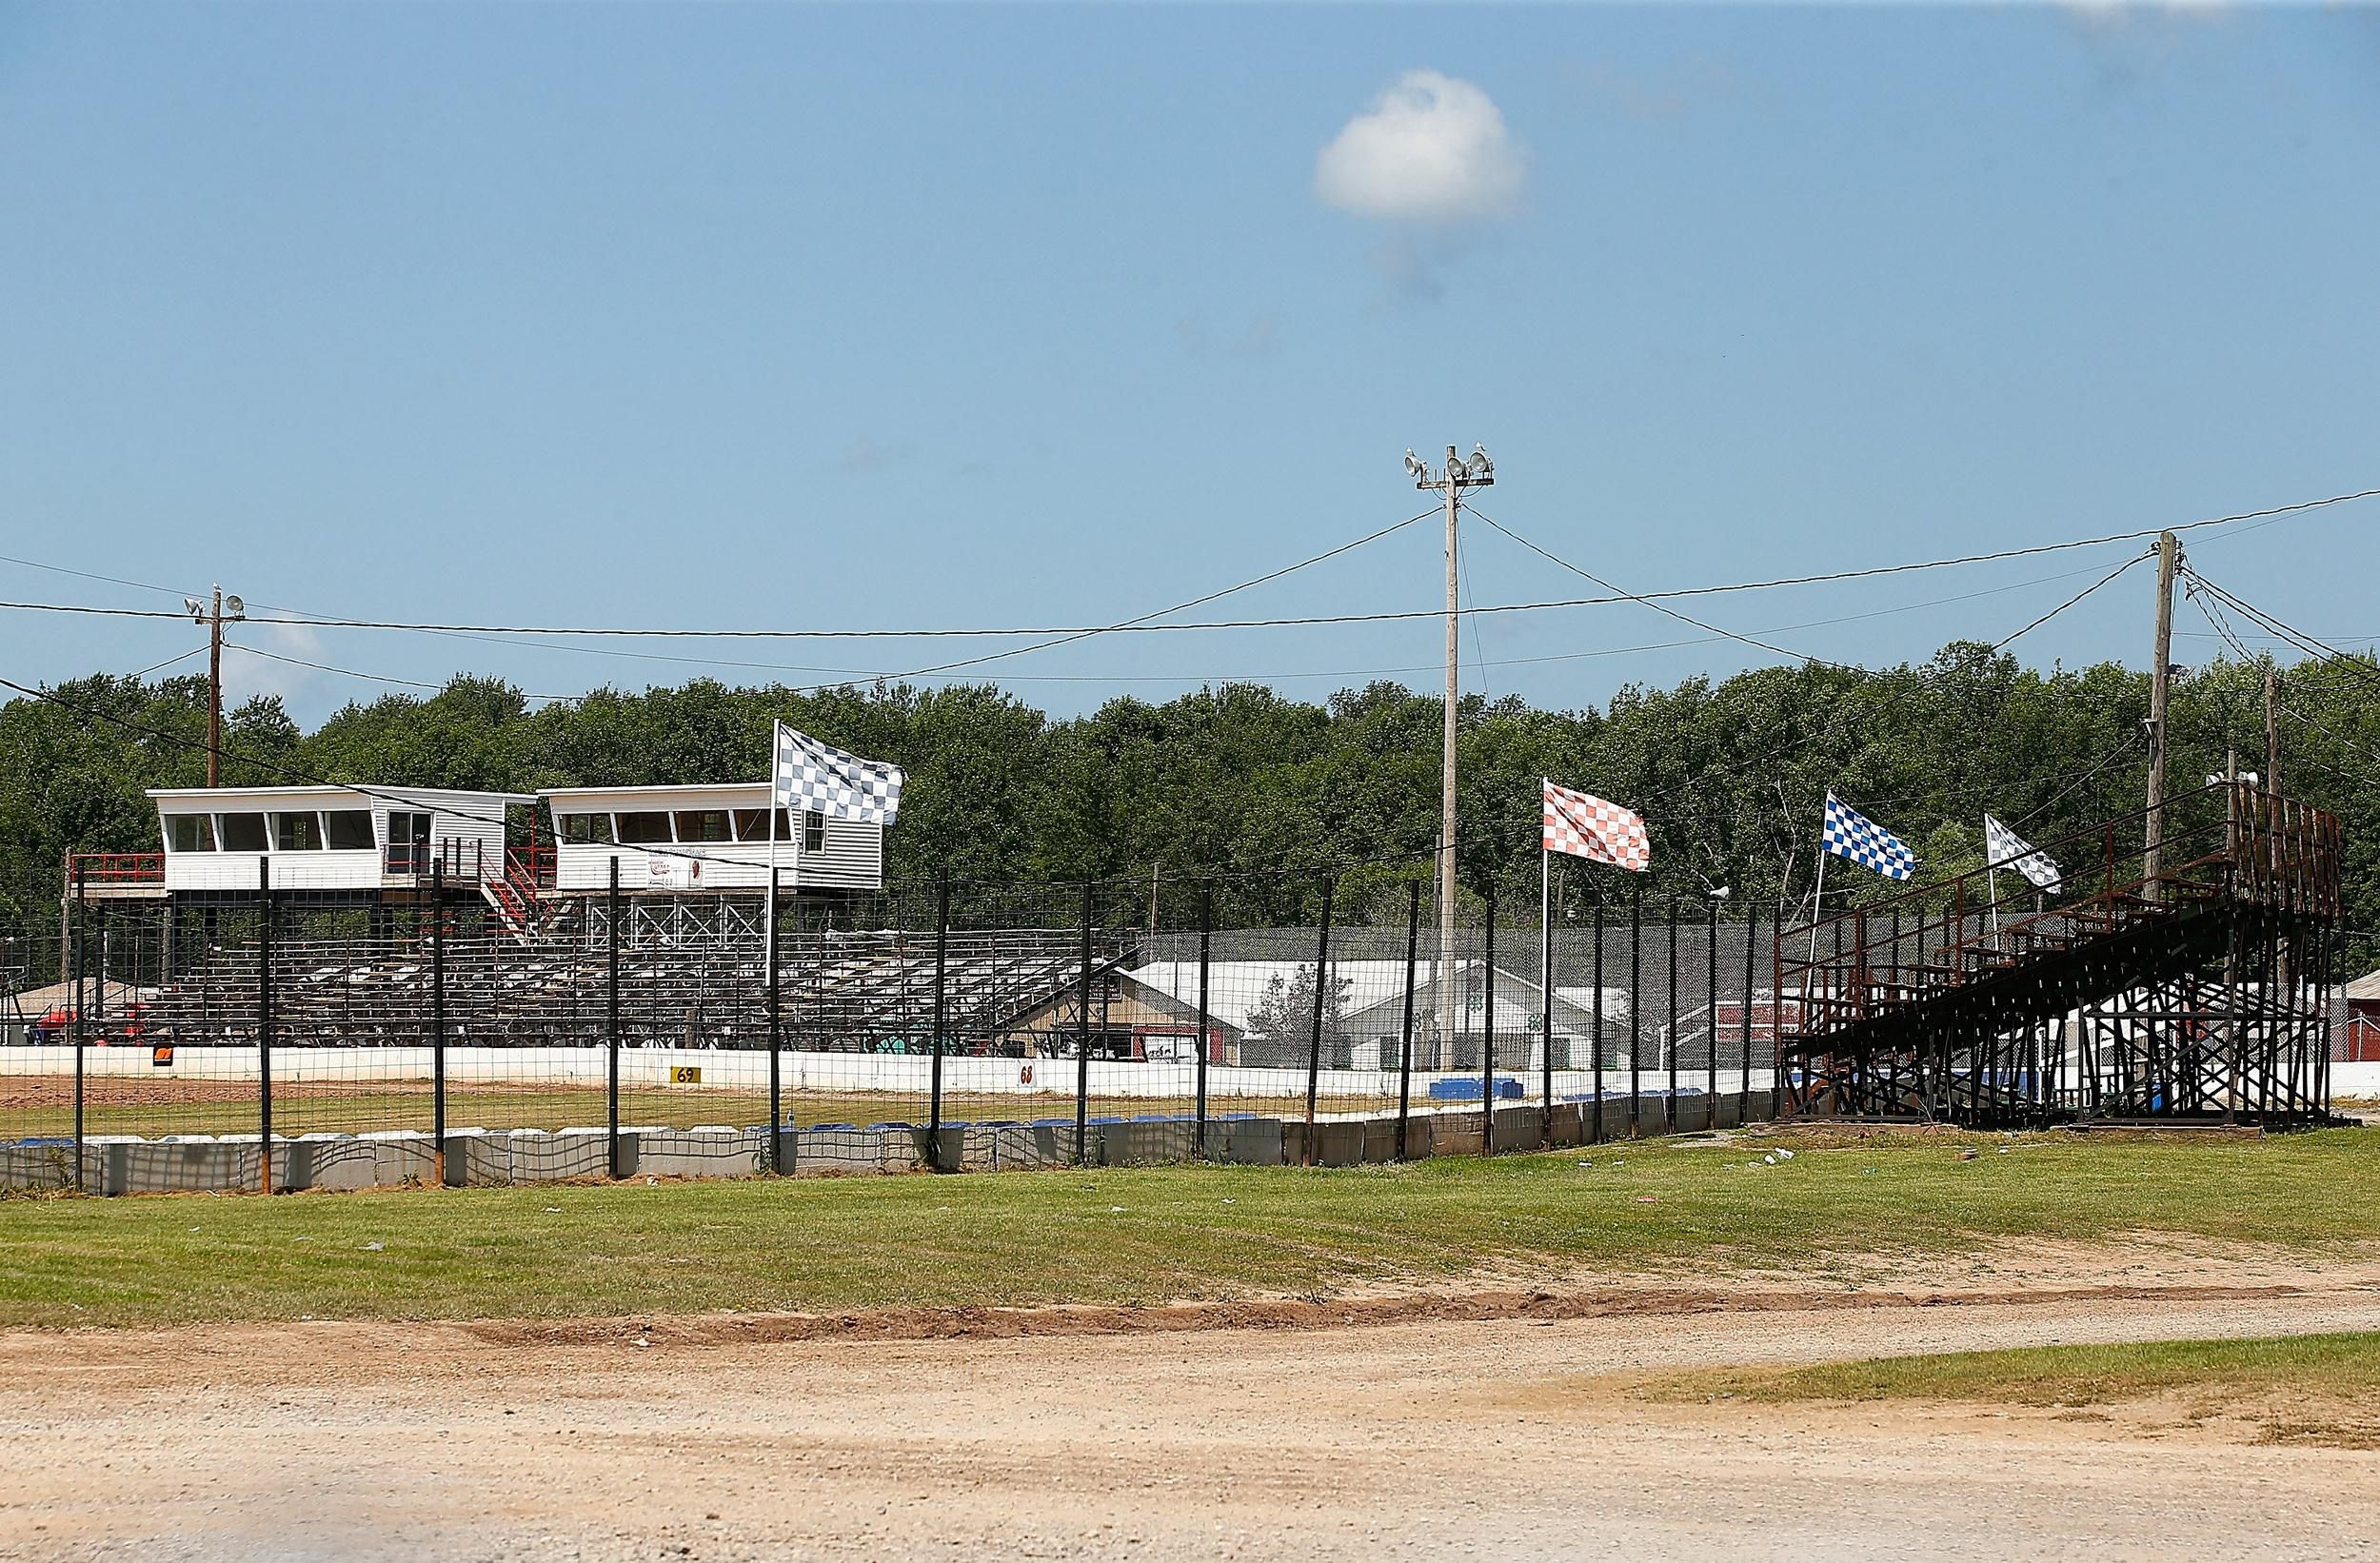 Image: The grandstands sit empty at the Canandaigua Motorsports Park